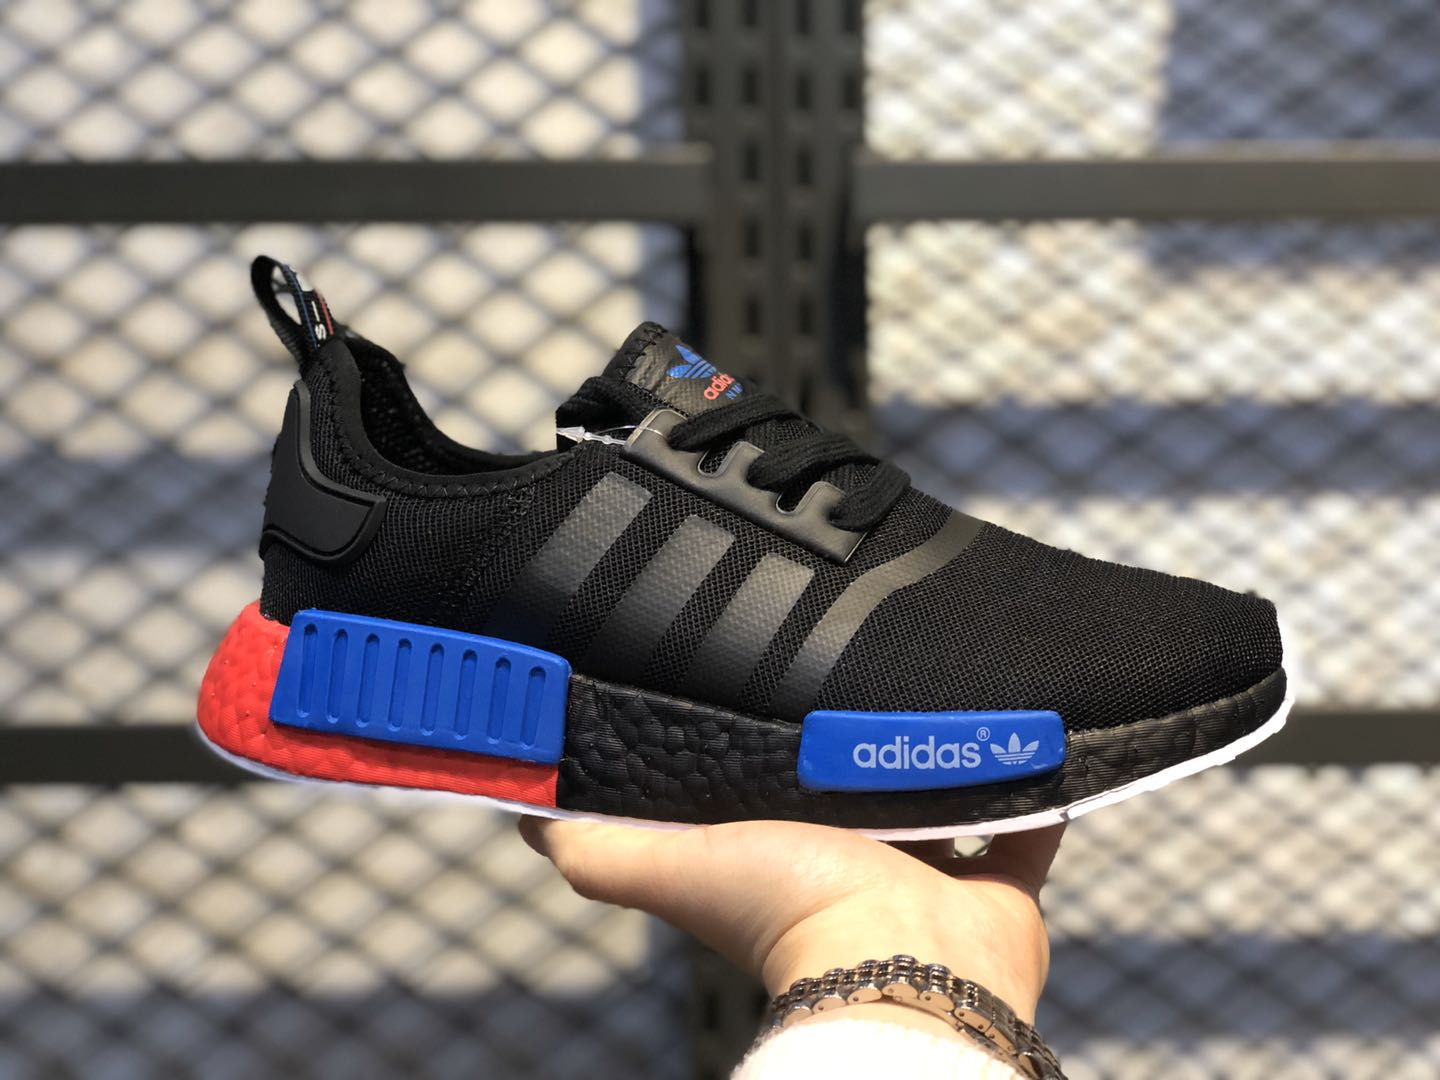 Adidas NMD R1 Core Black/Core Black/Lush Red On Sale FX4353